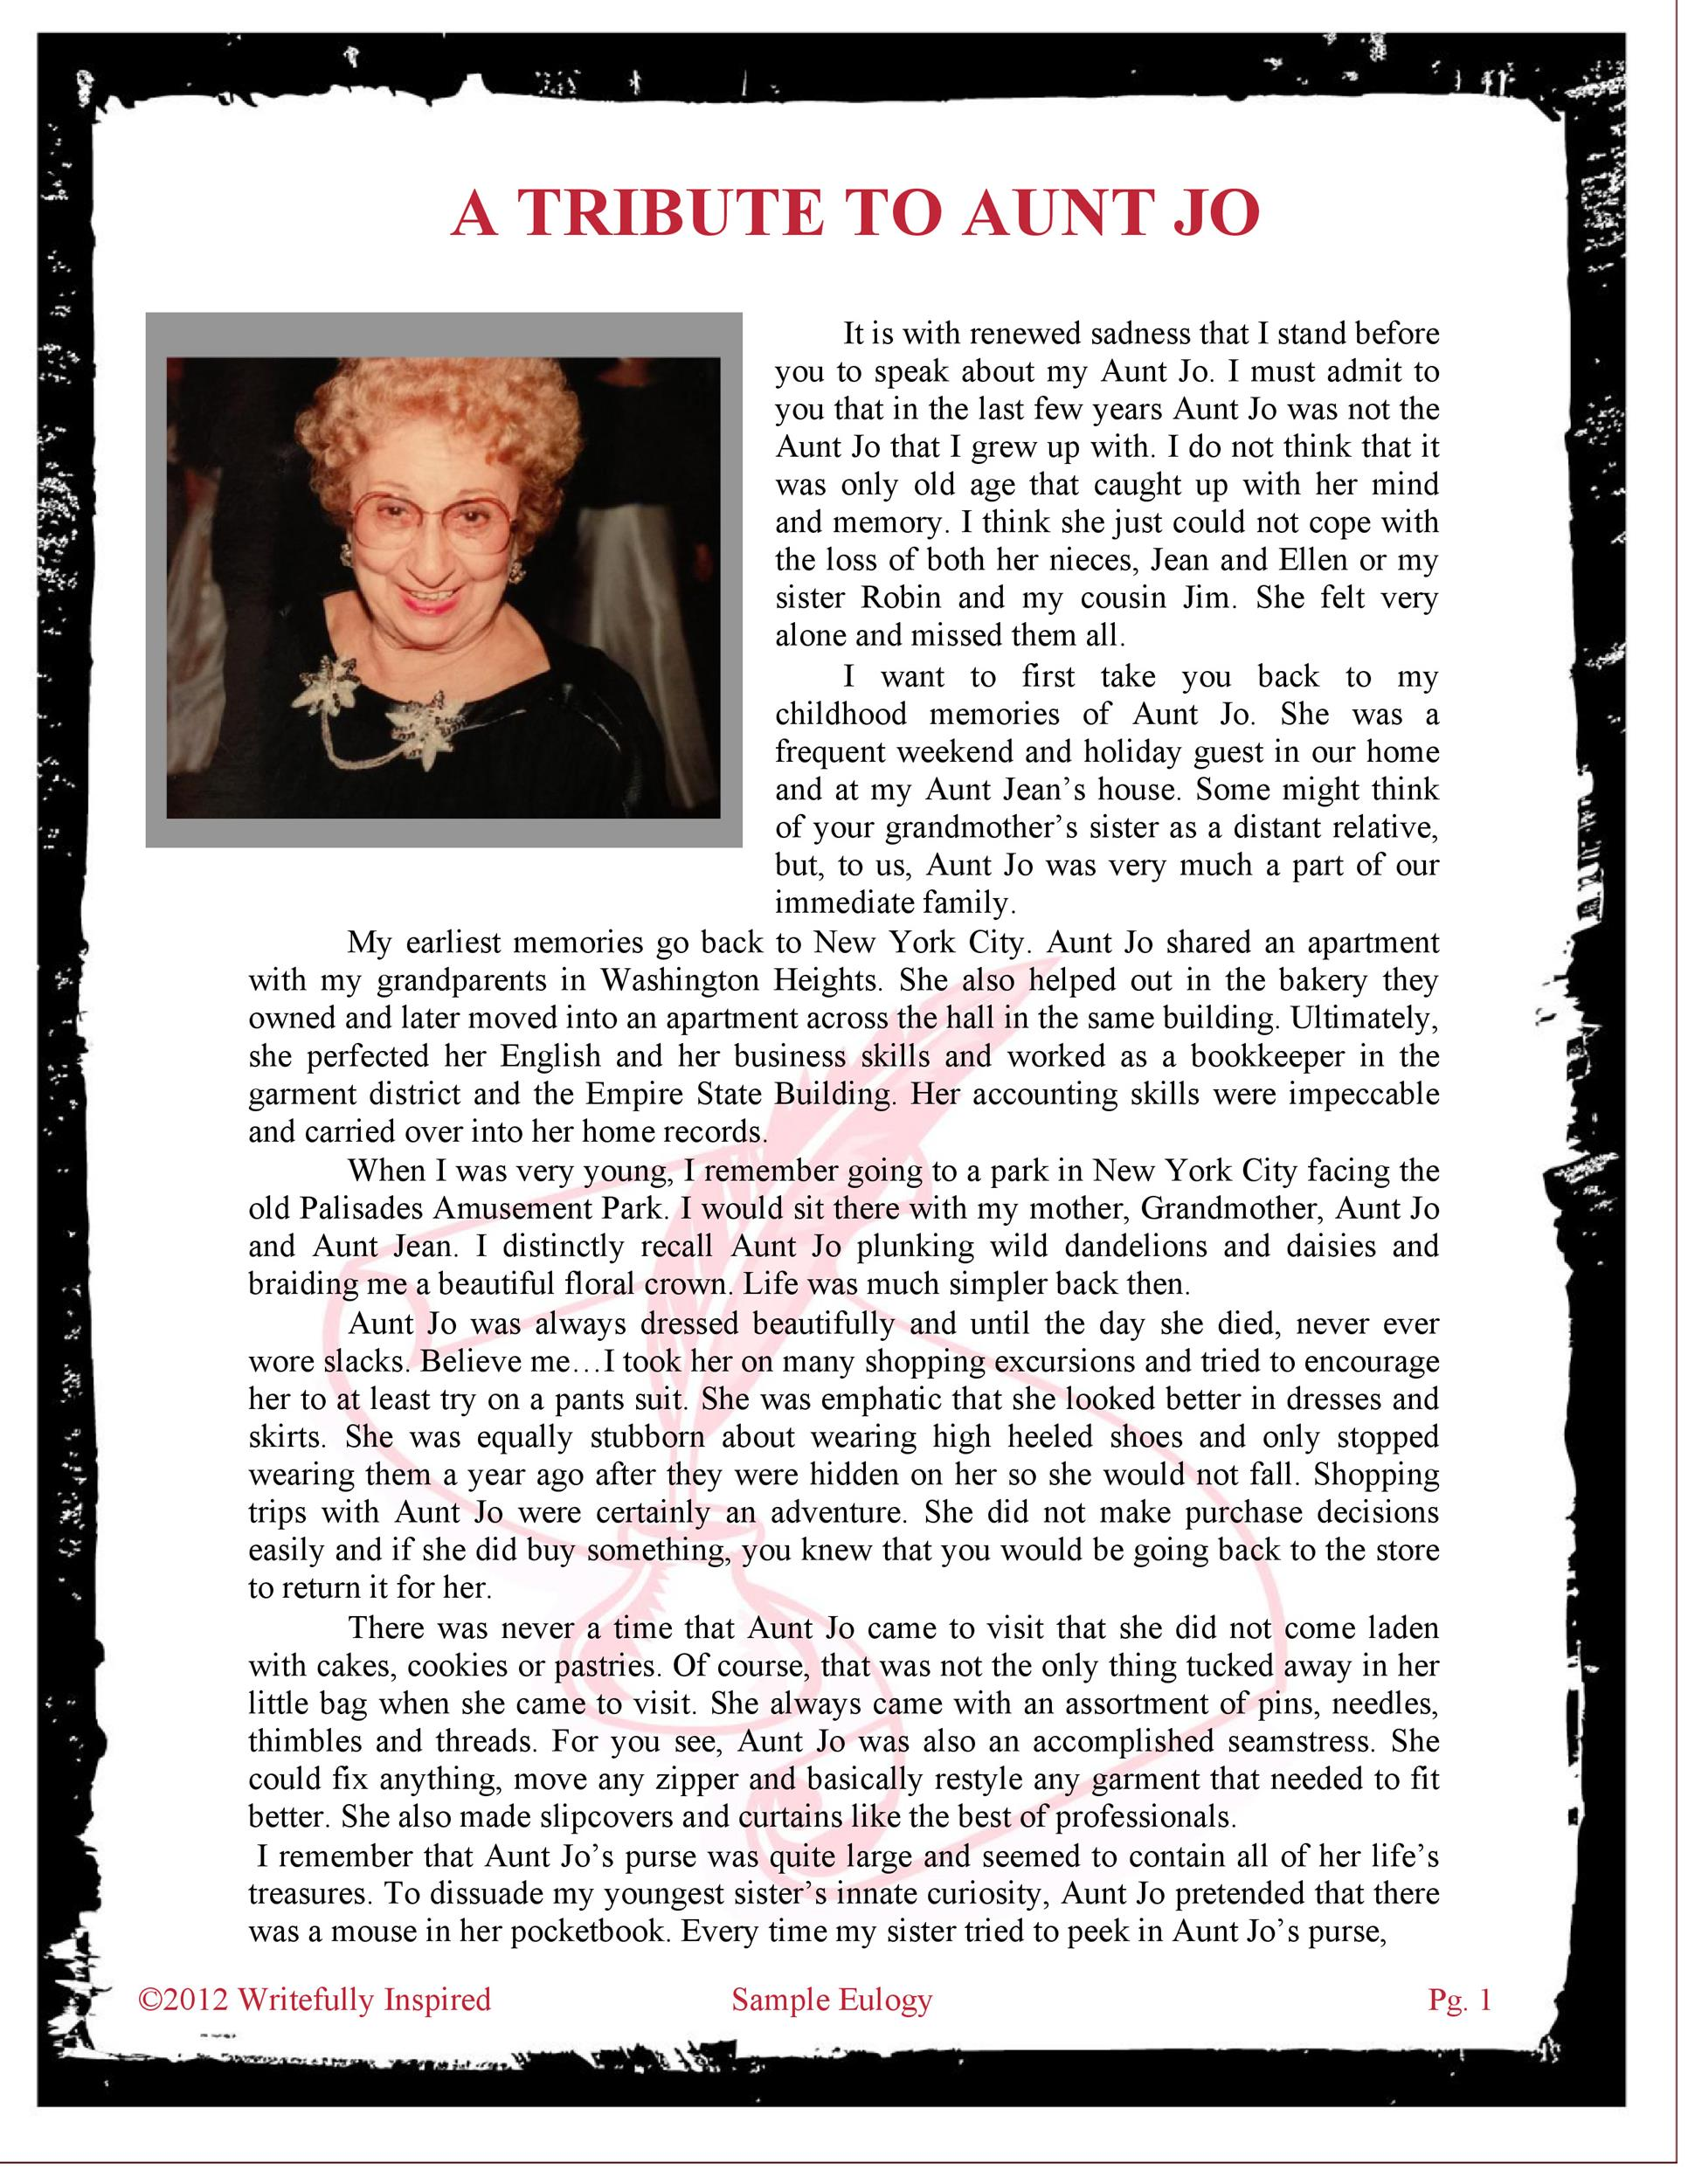 Free eulogy template 50